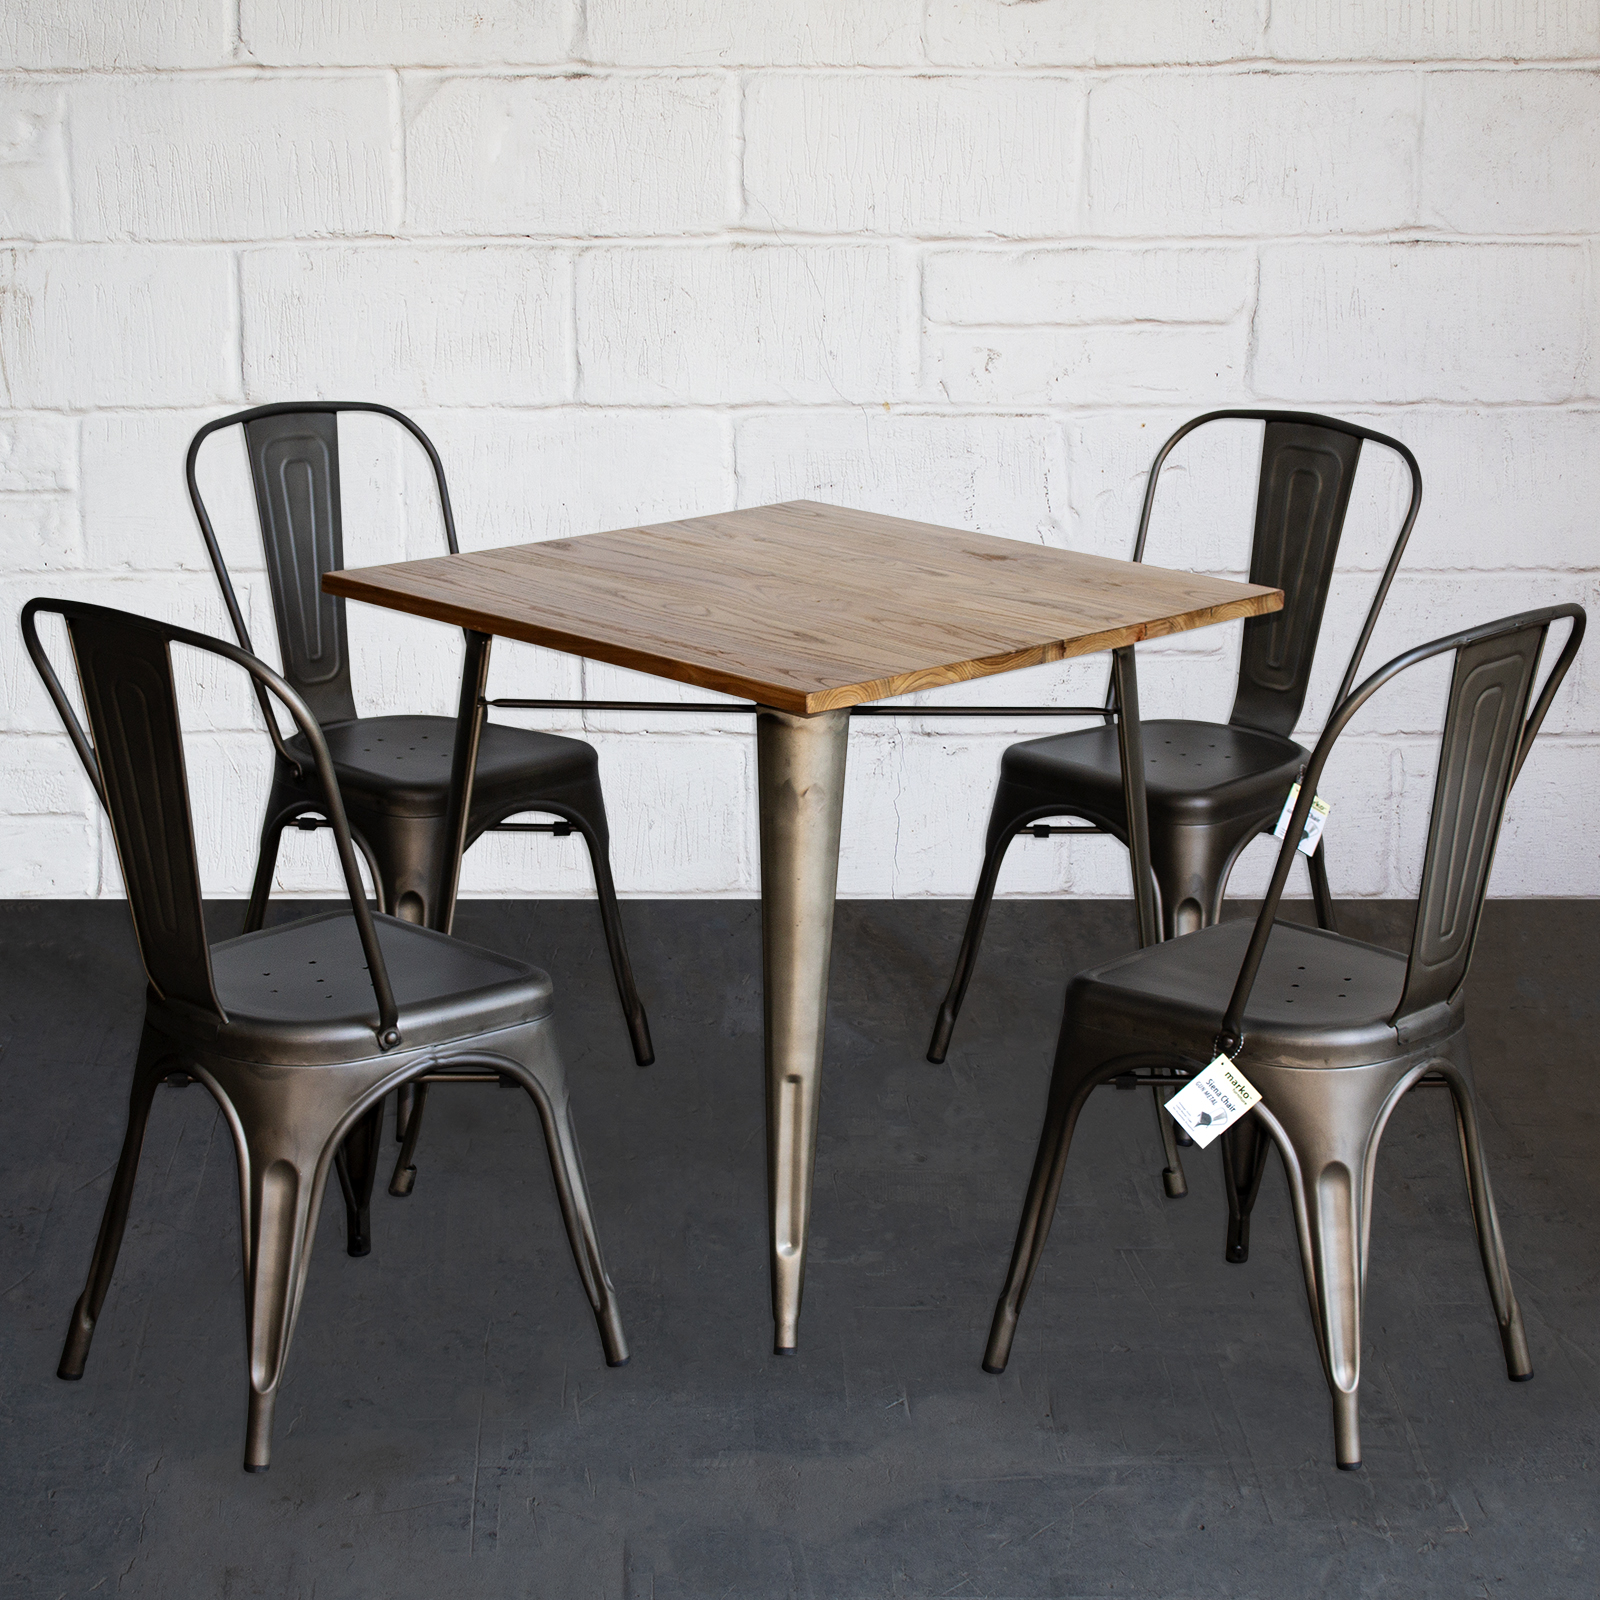 Details About 3pc 5pc Dining Table Chair Sets Metal Wood Cafe Restaurant Bistro Rustic Tolix